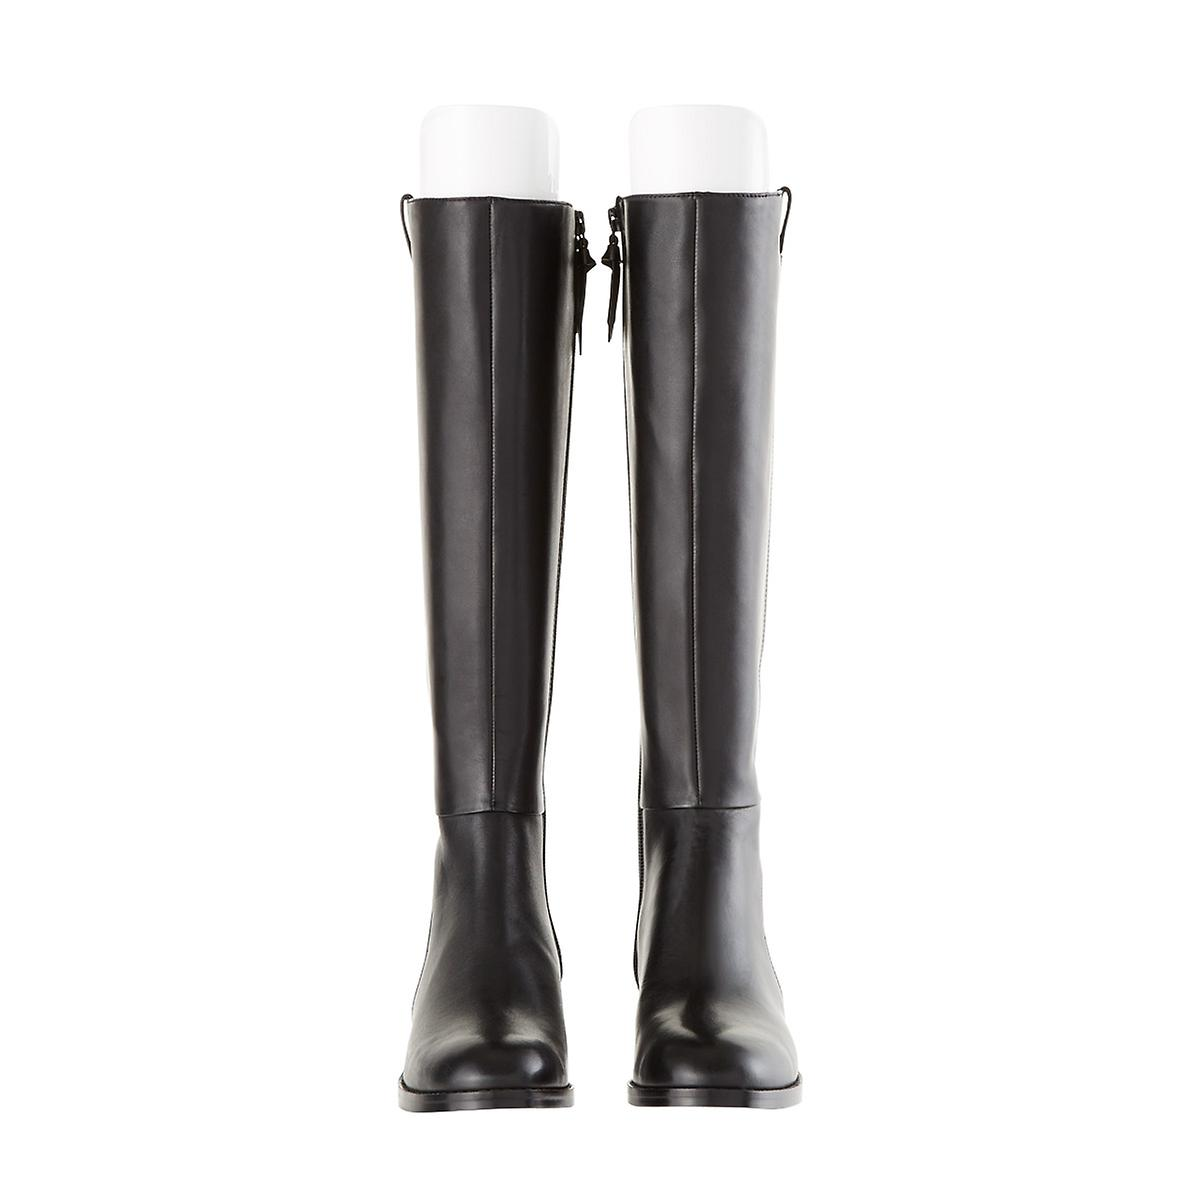 Tall White Boot Shapers